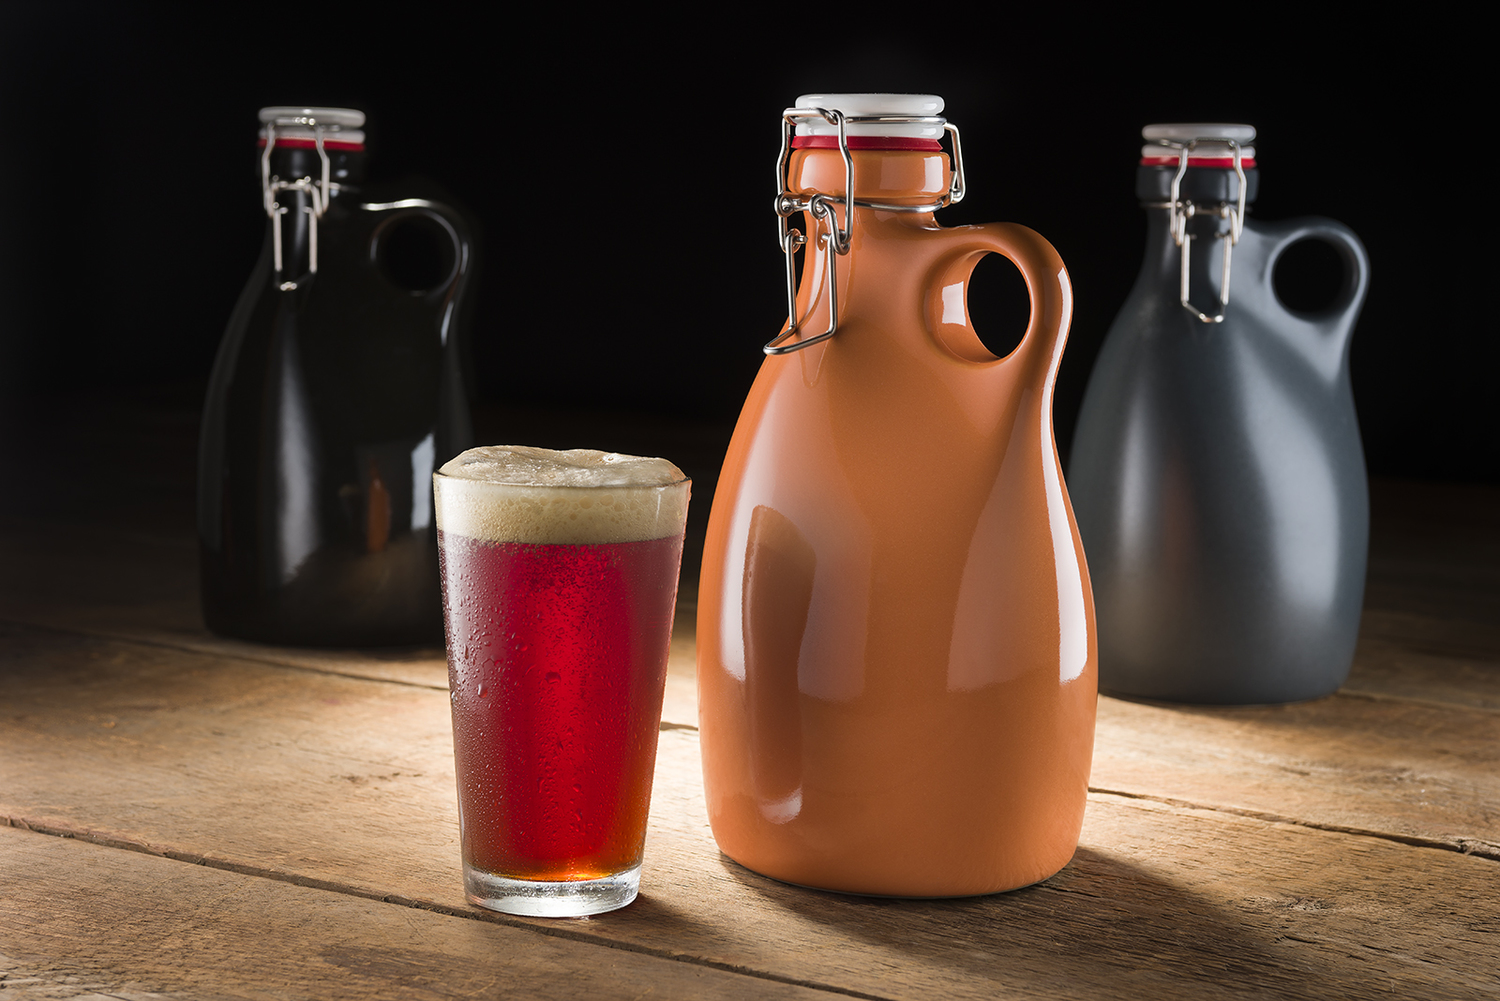 Orange-Vessel-company-Stoneware-Beer-Growler-rob-englert-hal-silverman-ram-industrial-design